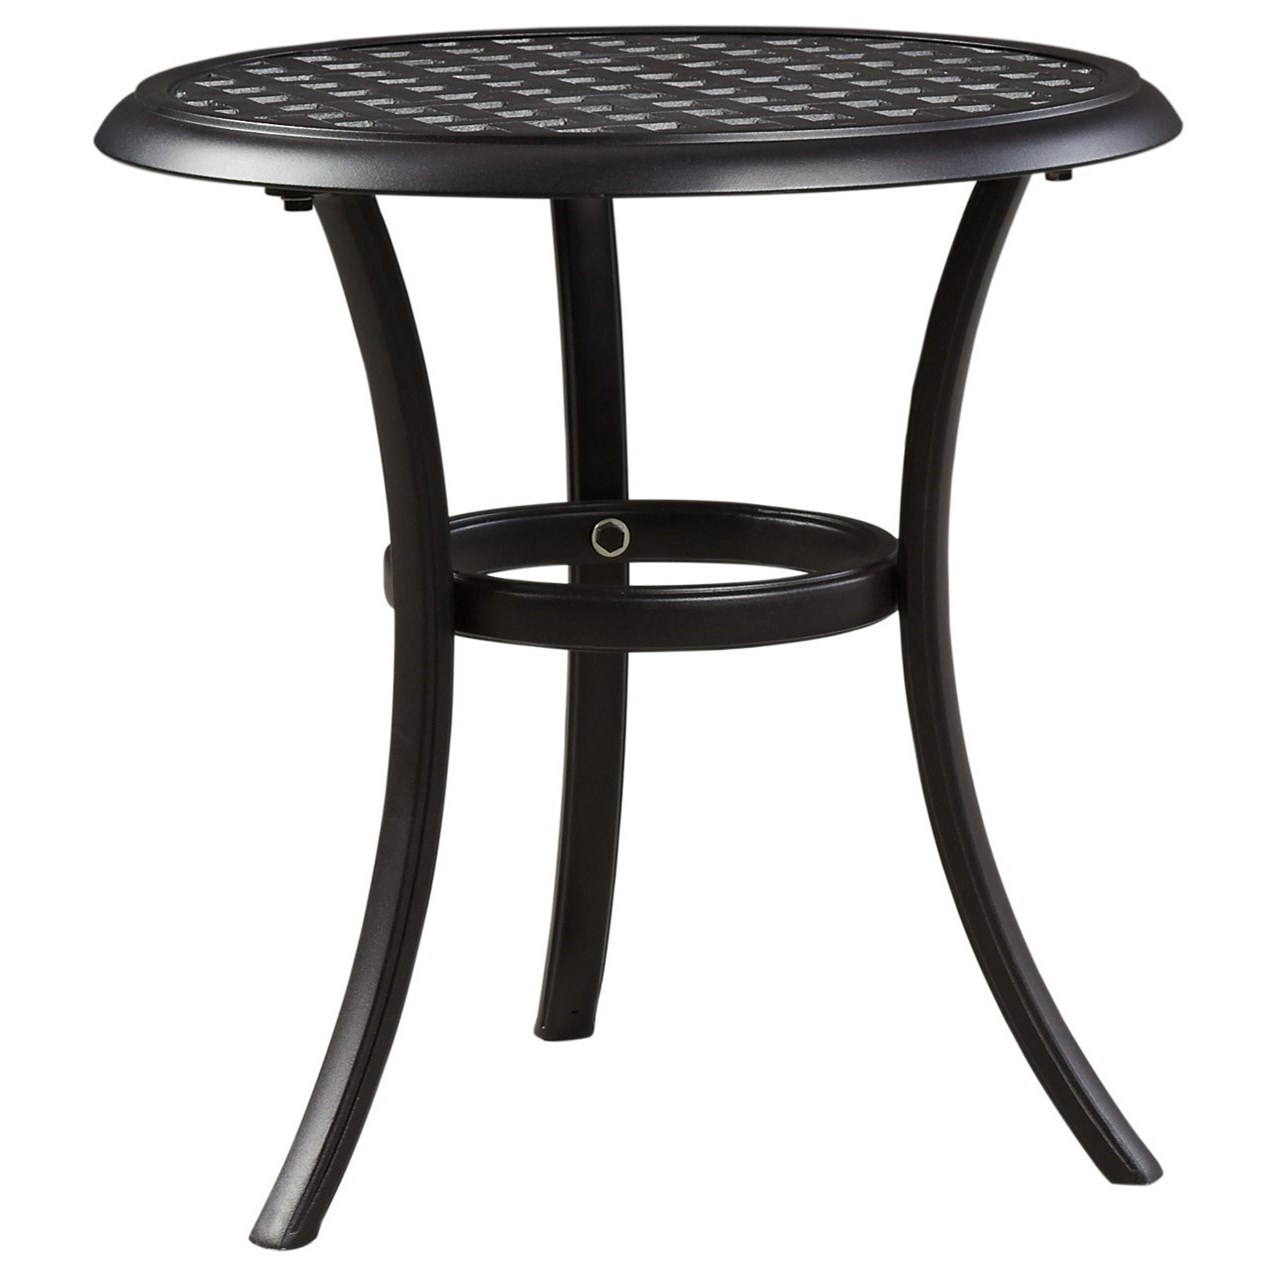 signature design ashley tanglevale outdoor round end contemporary wicker accent table target tables triangle ikea nesting coffee modern furniture grey nightstand metal dining room